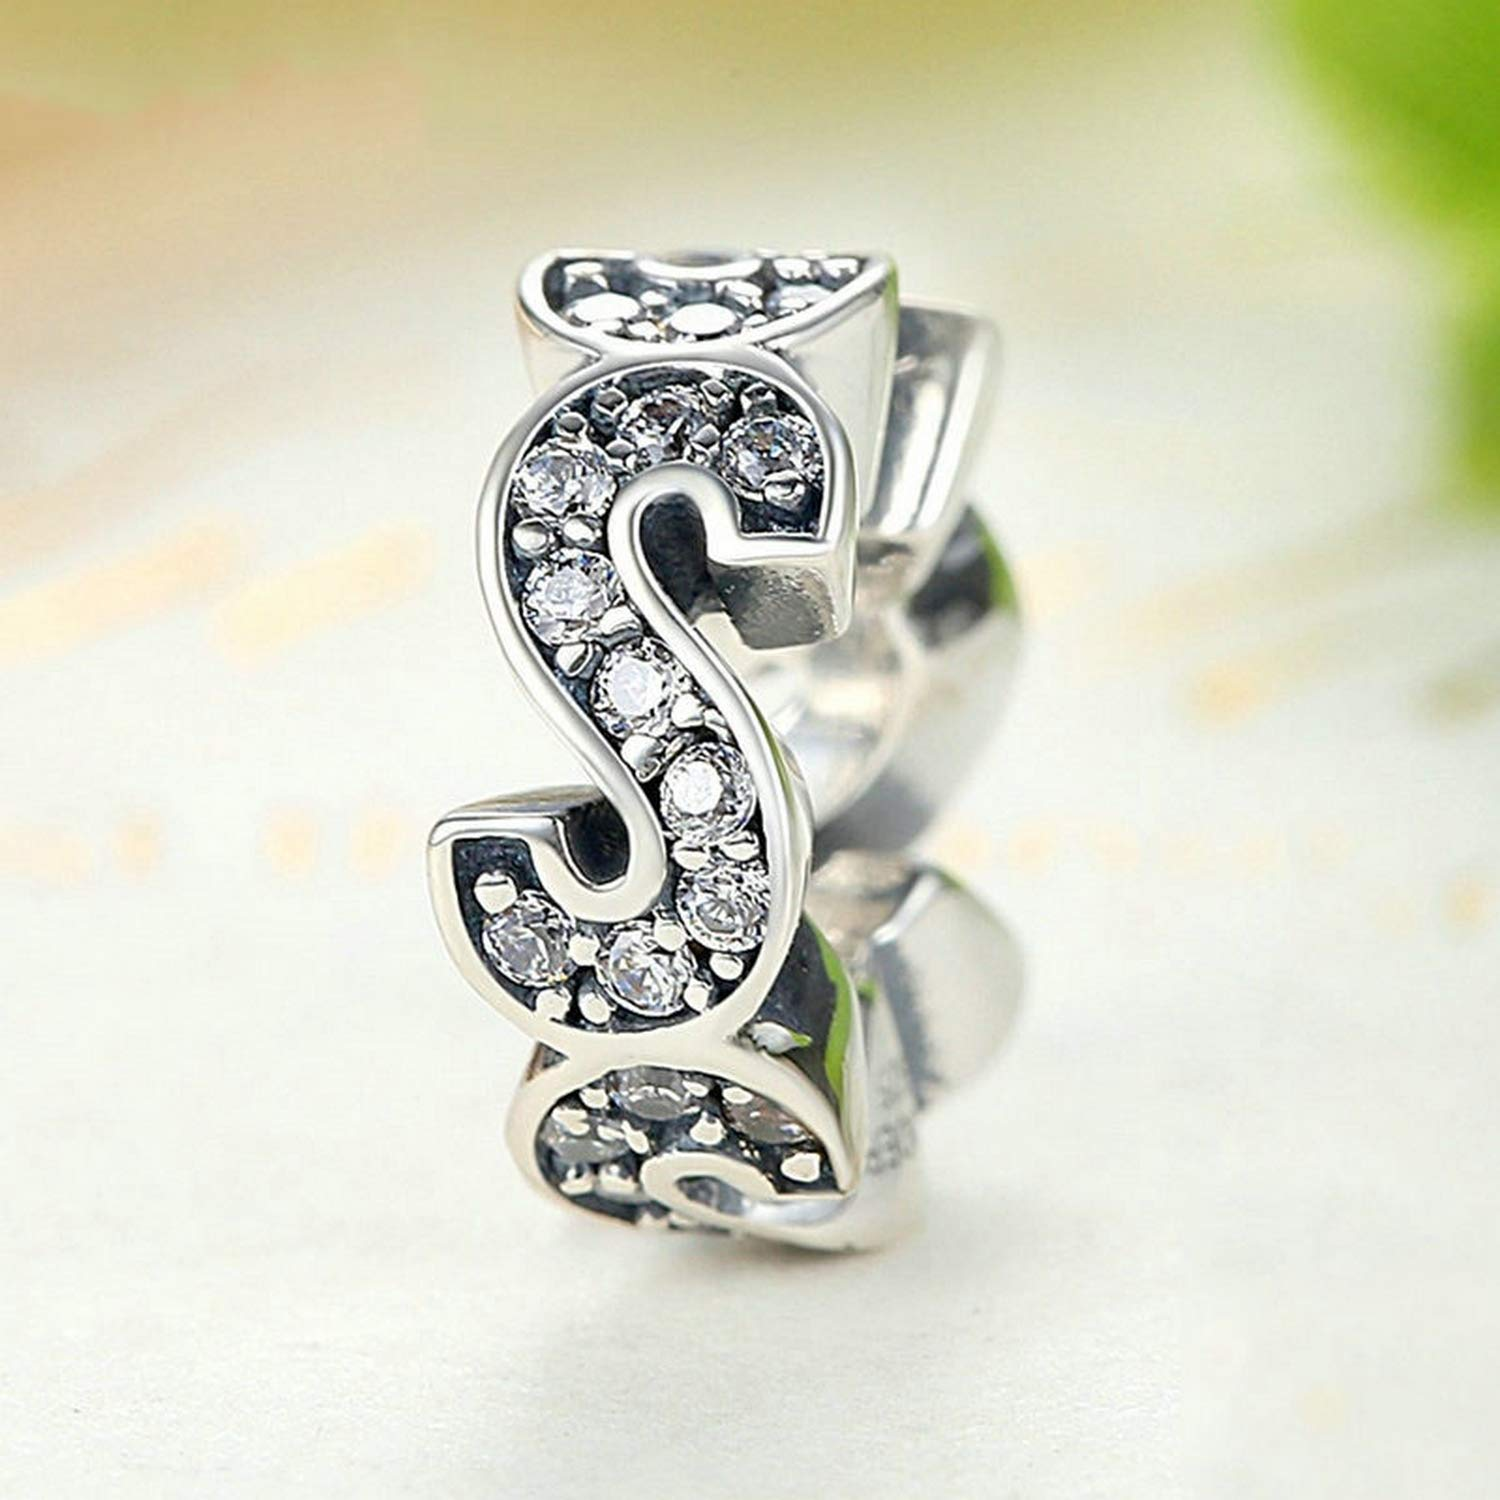 EverReena Beads S Shape Vogue Spacer Charms for Silver Bracelets